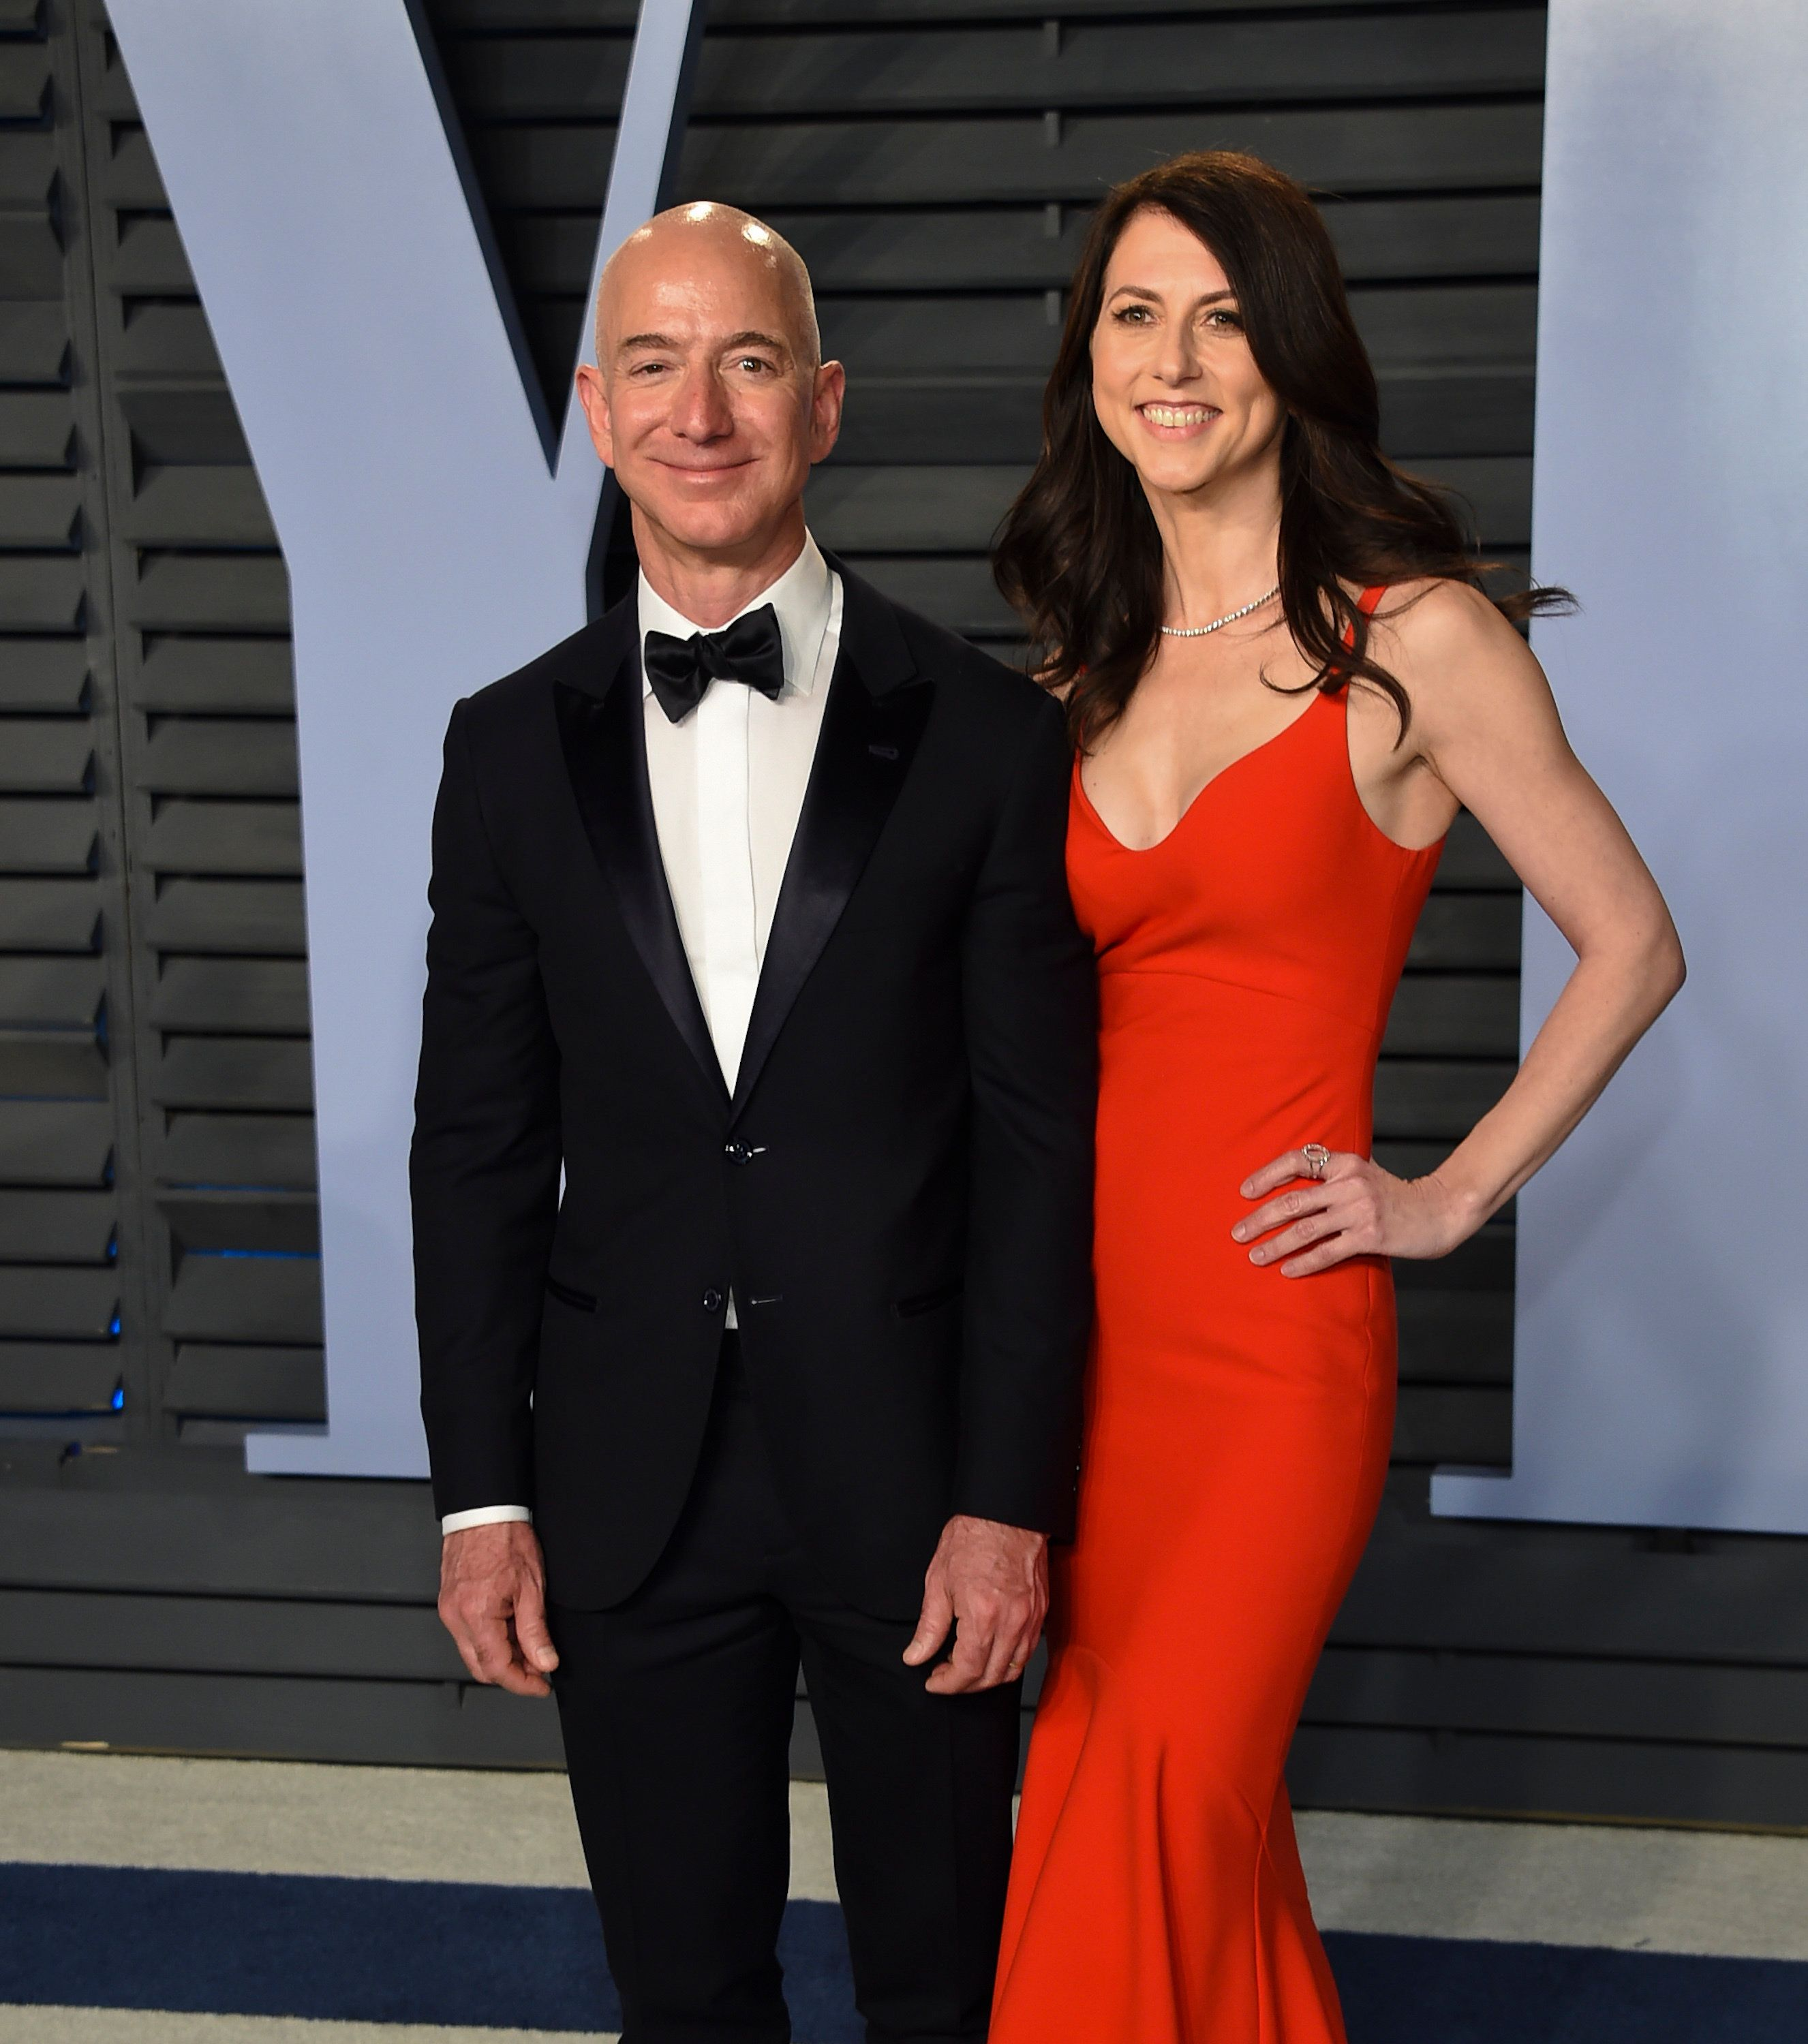 $140-Billon Divorce! Amazon CEO Jeff Bezos & Wife MacKenzie Split